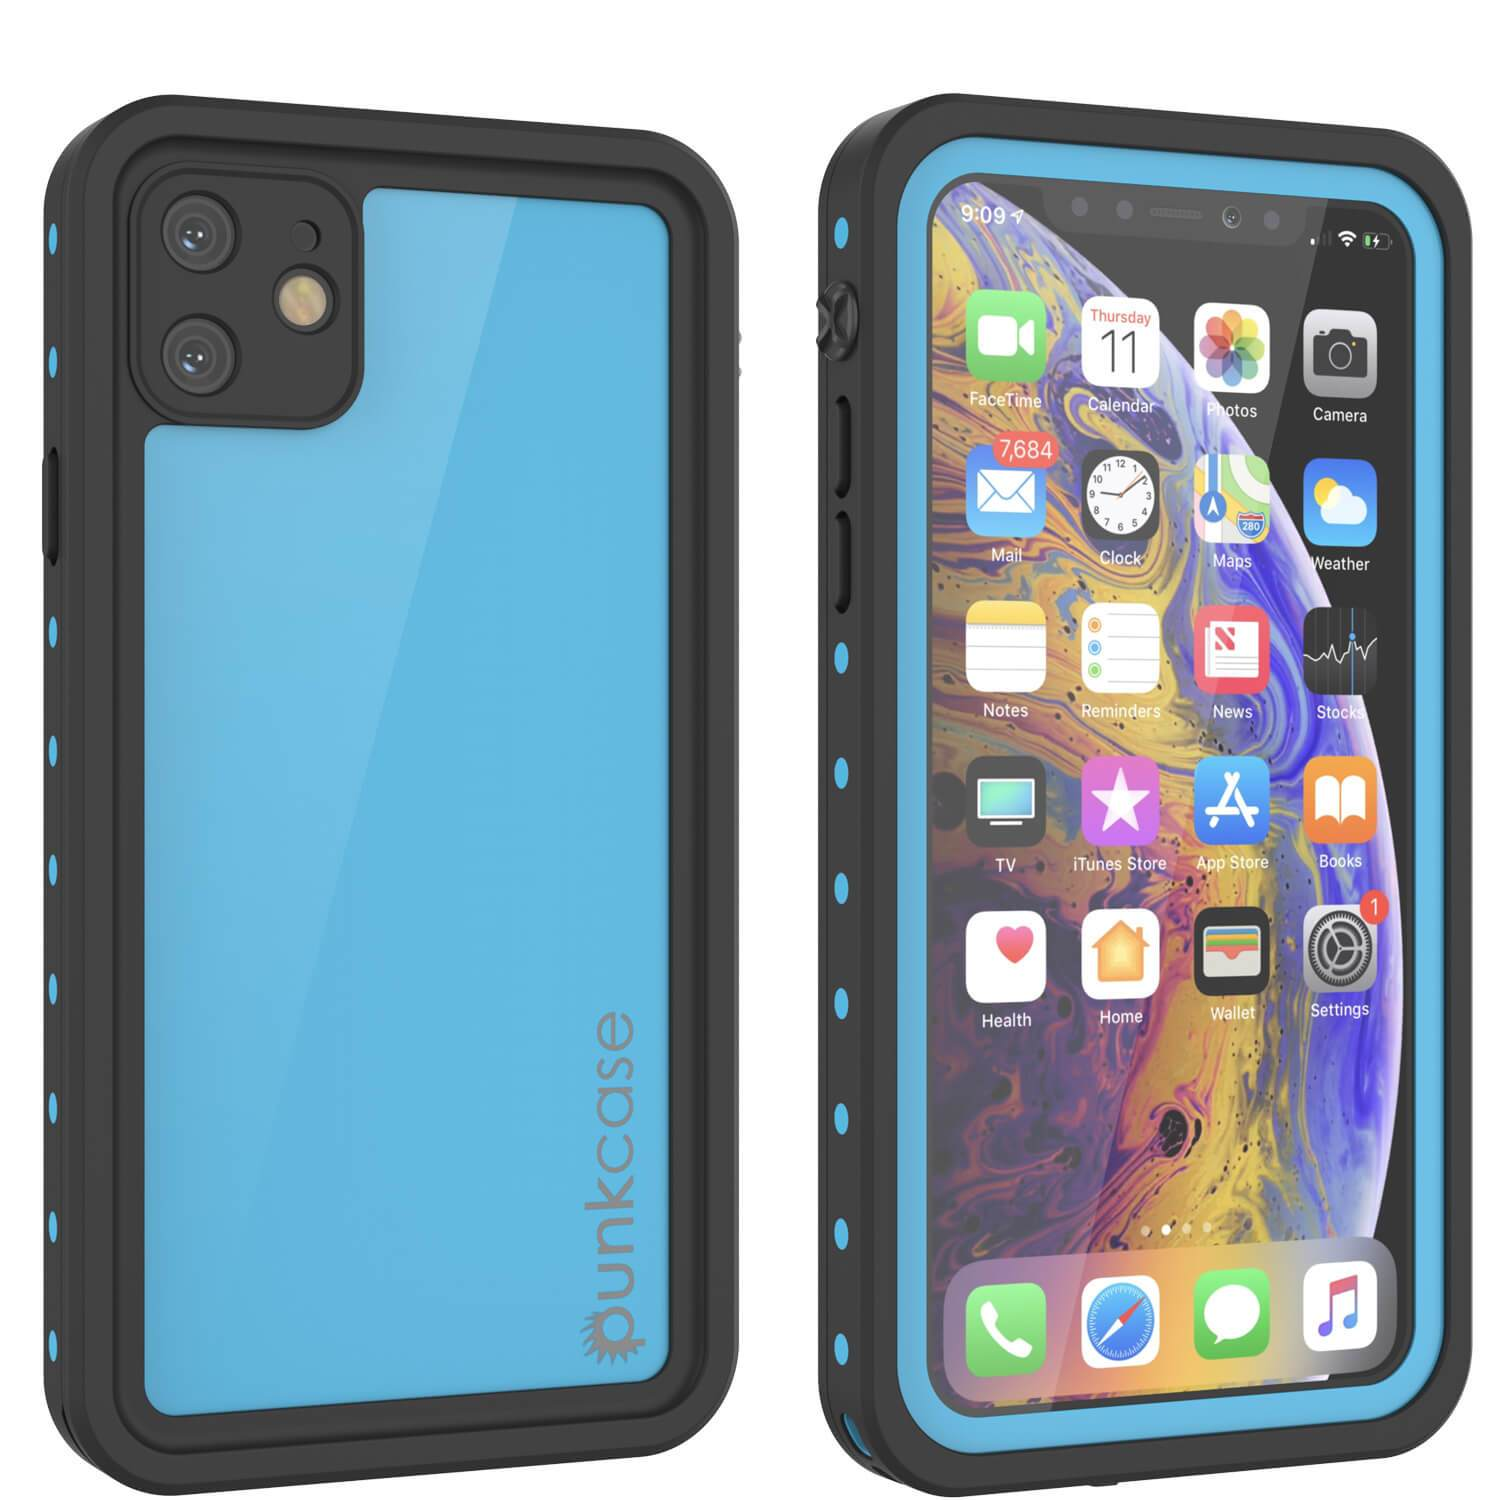 iPhone 11 Waterproof IP68 Case, Punkcase [Light blue] [StudStar Series] [Slim Fit] [Dirtproof]